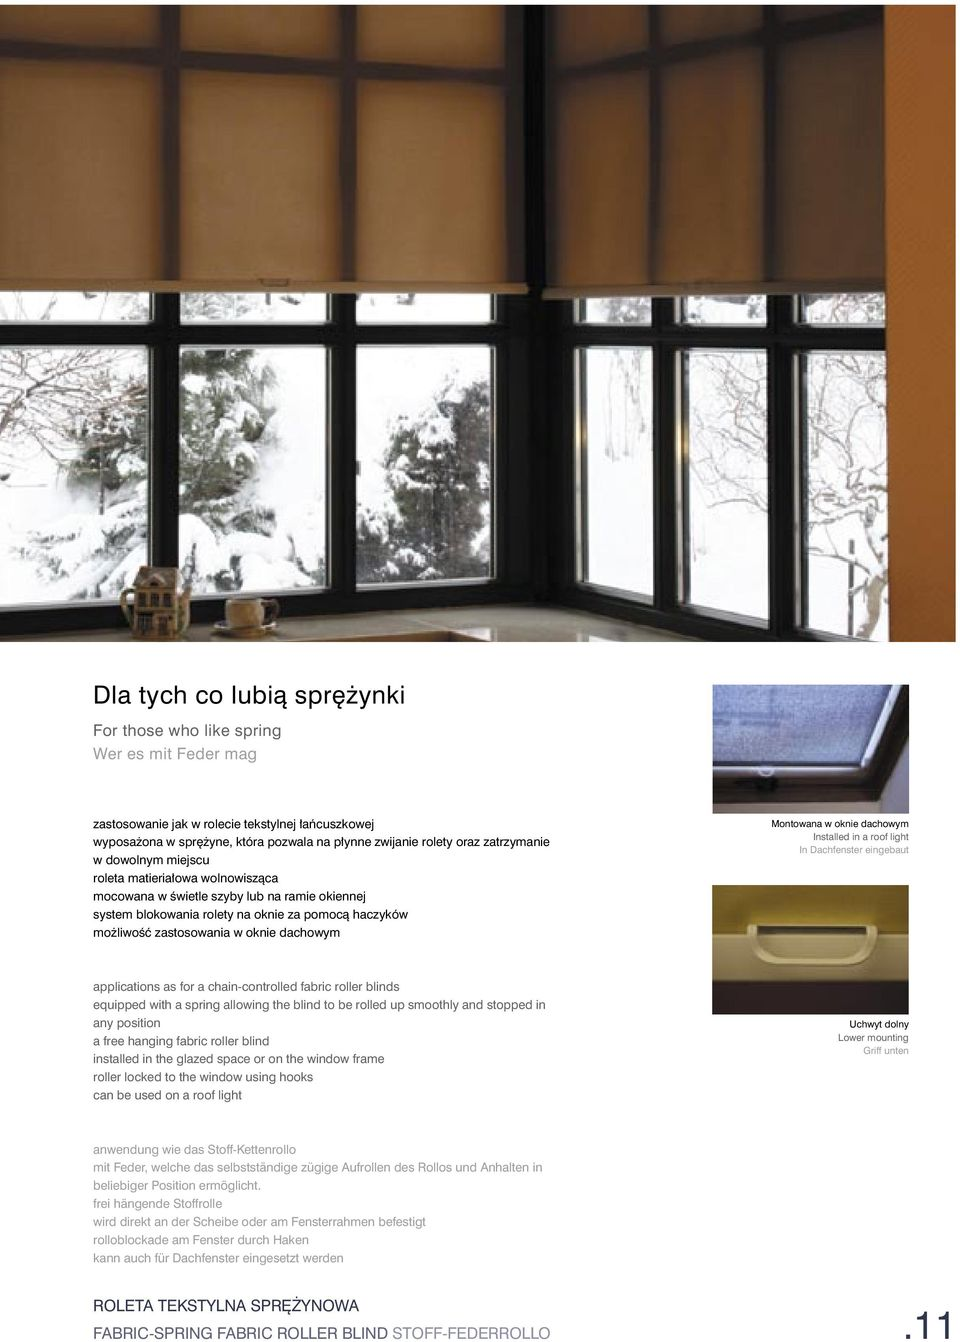 dachowym Montowana w oknie dachowym Installed in a roof light In Dachfenster eingebaut applications as for a chain-controlled fabric roller blinds equipped with a spring allowing the blind to be